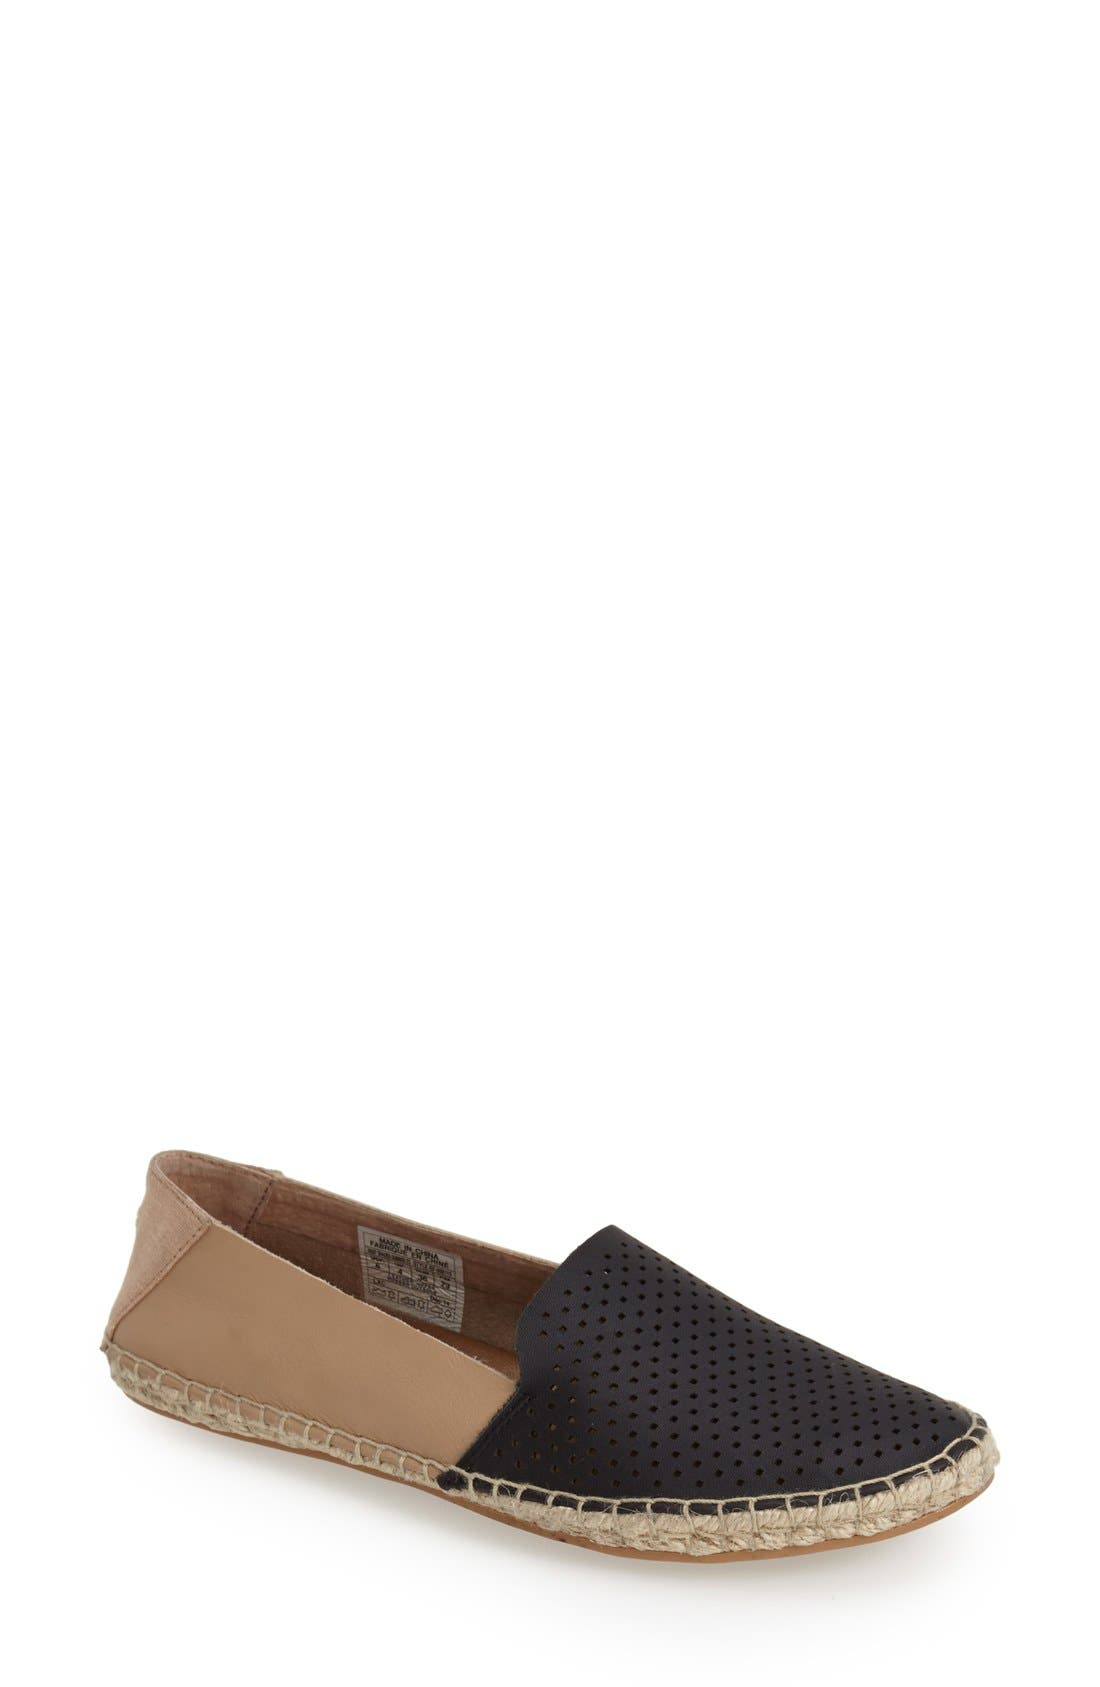 Main Image - Reef 'Shaded Summer' Espadrille Flat (Women)